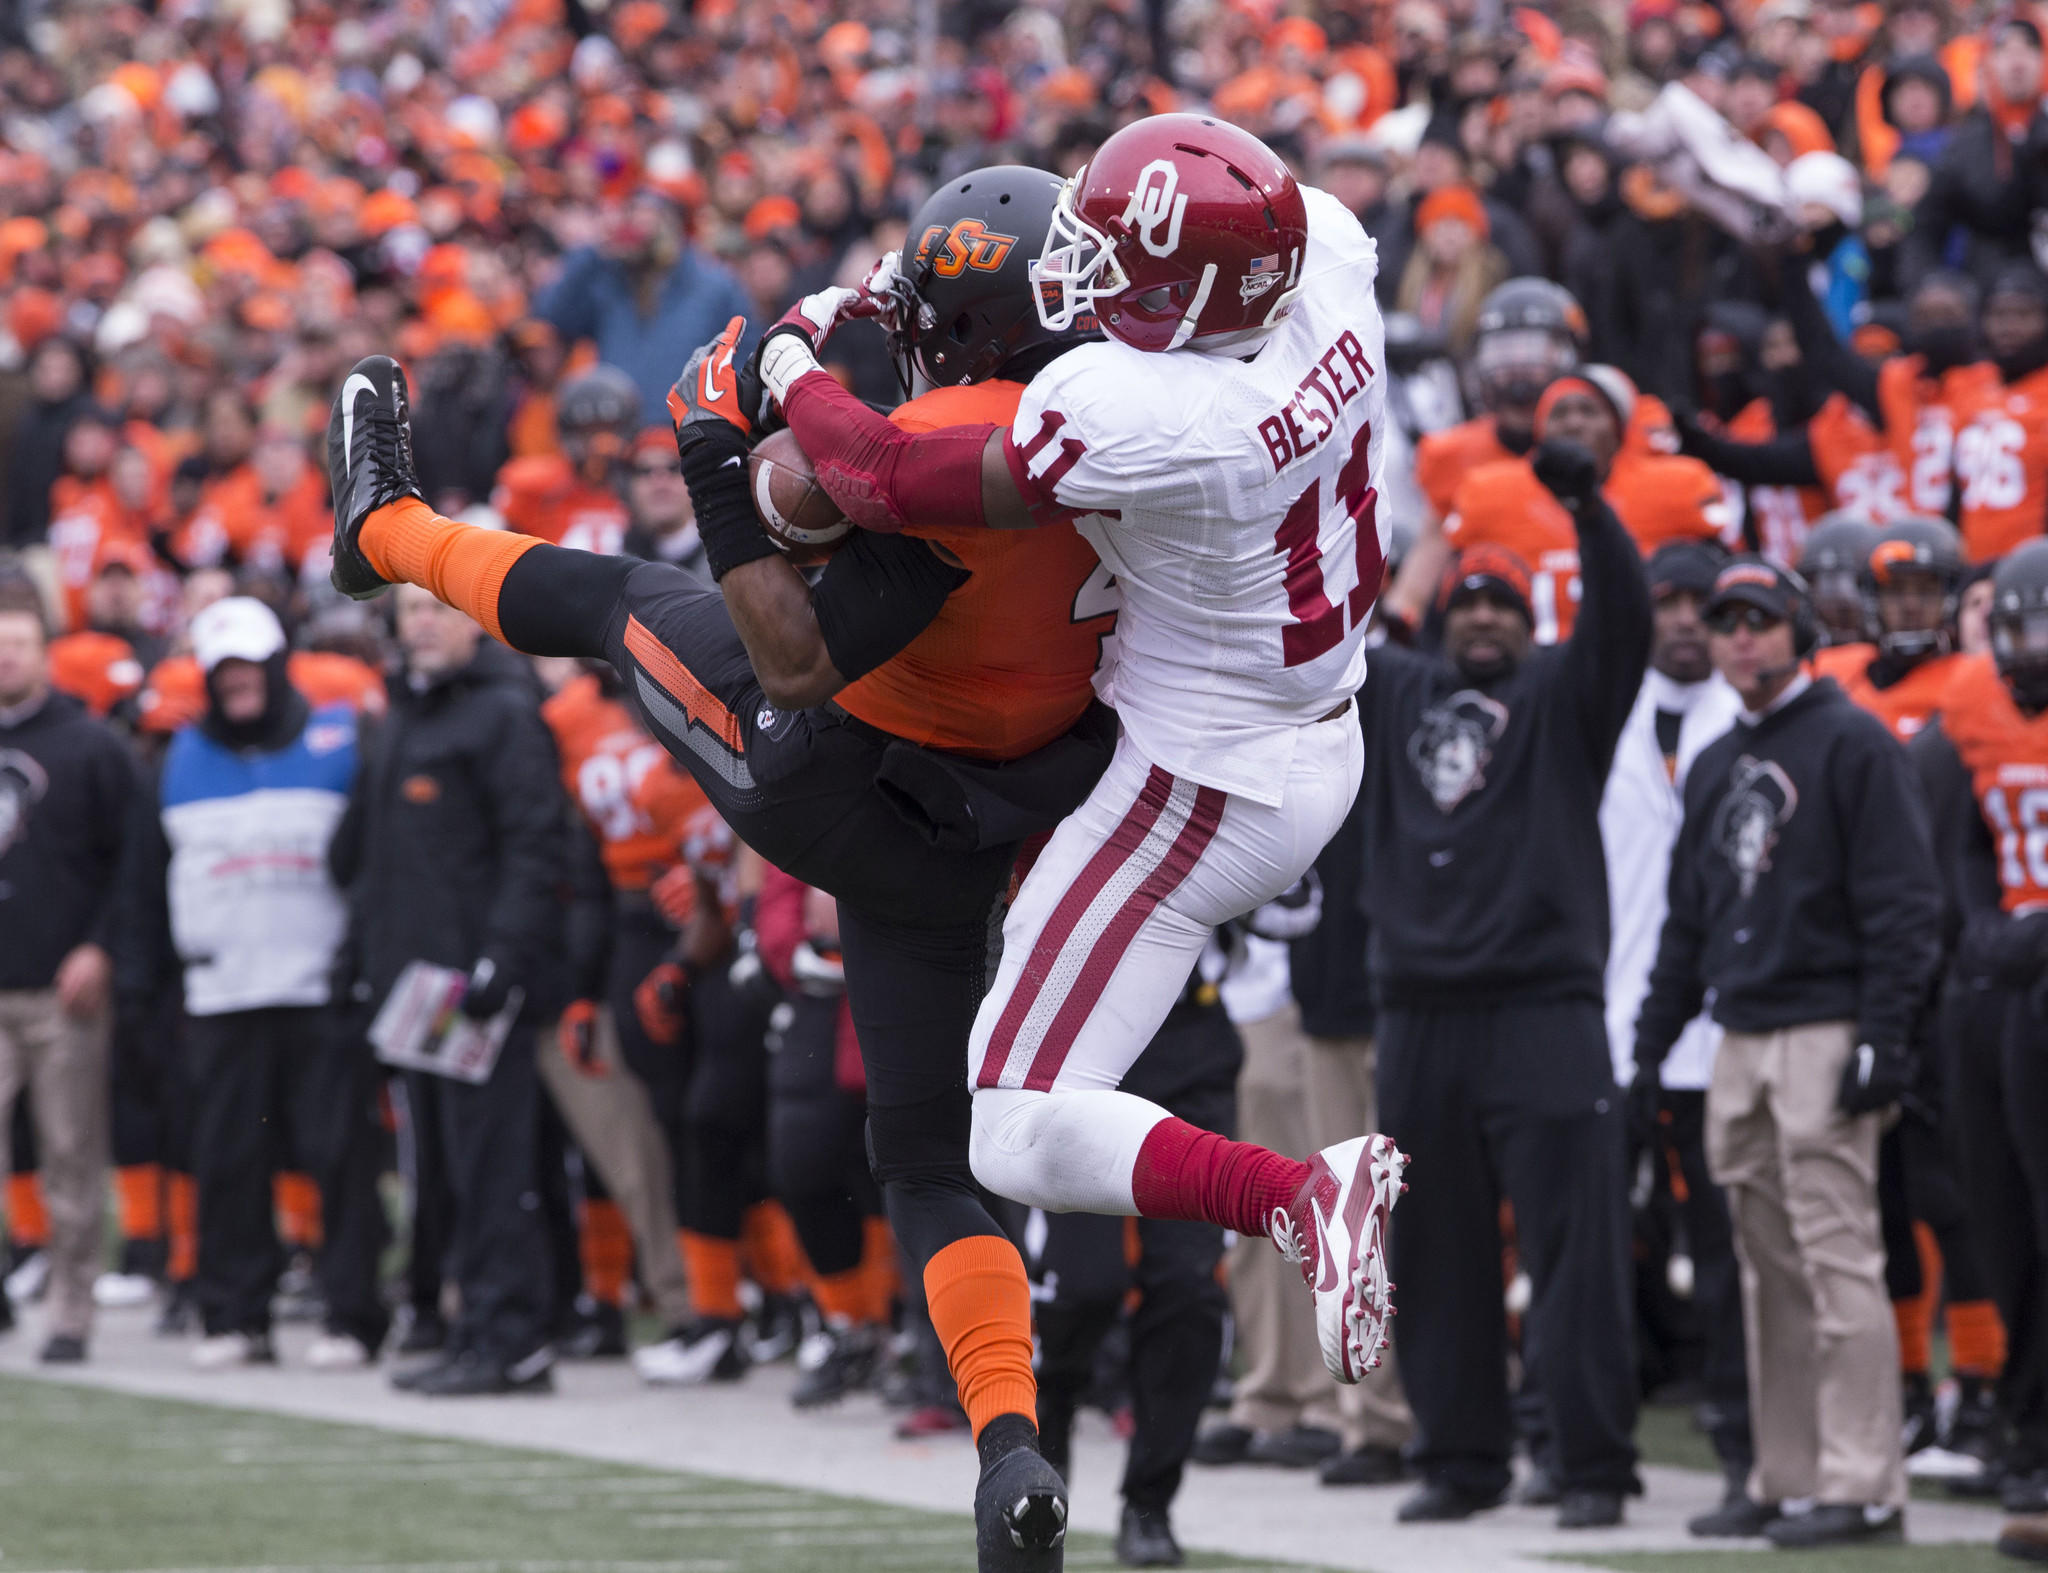 Oklahoma State cornerback Justin Gilbert breaks up a pass intended for Oklahoma receiver Lacoltan Bester.